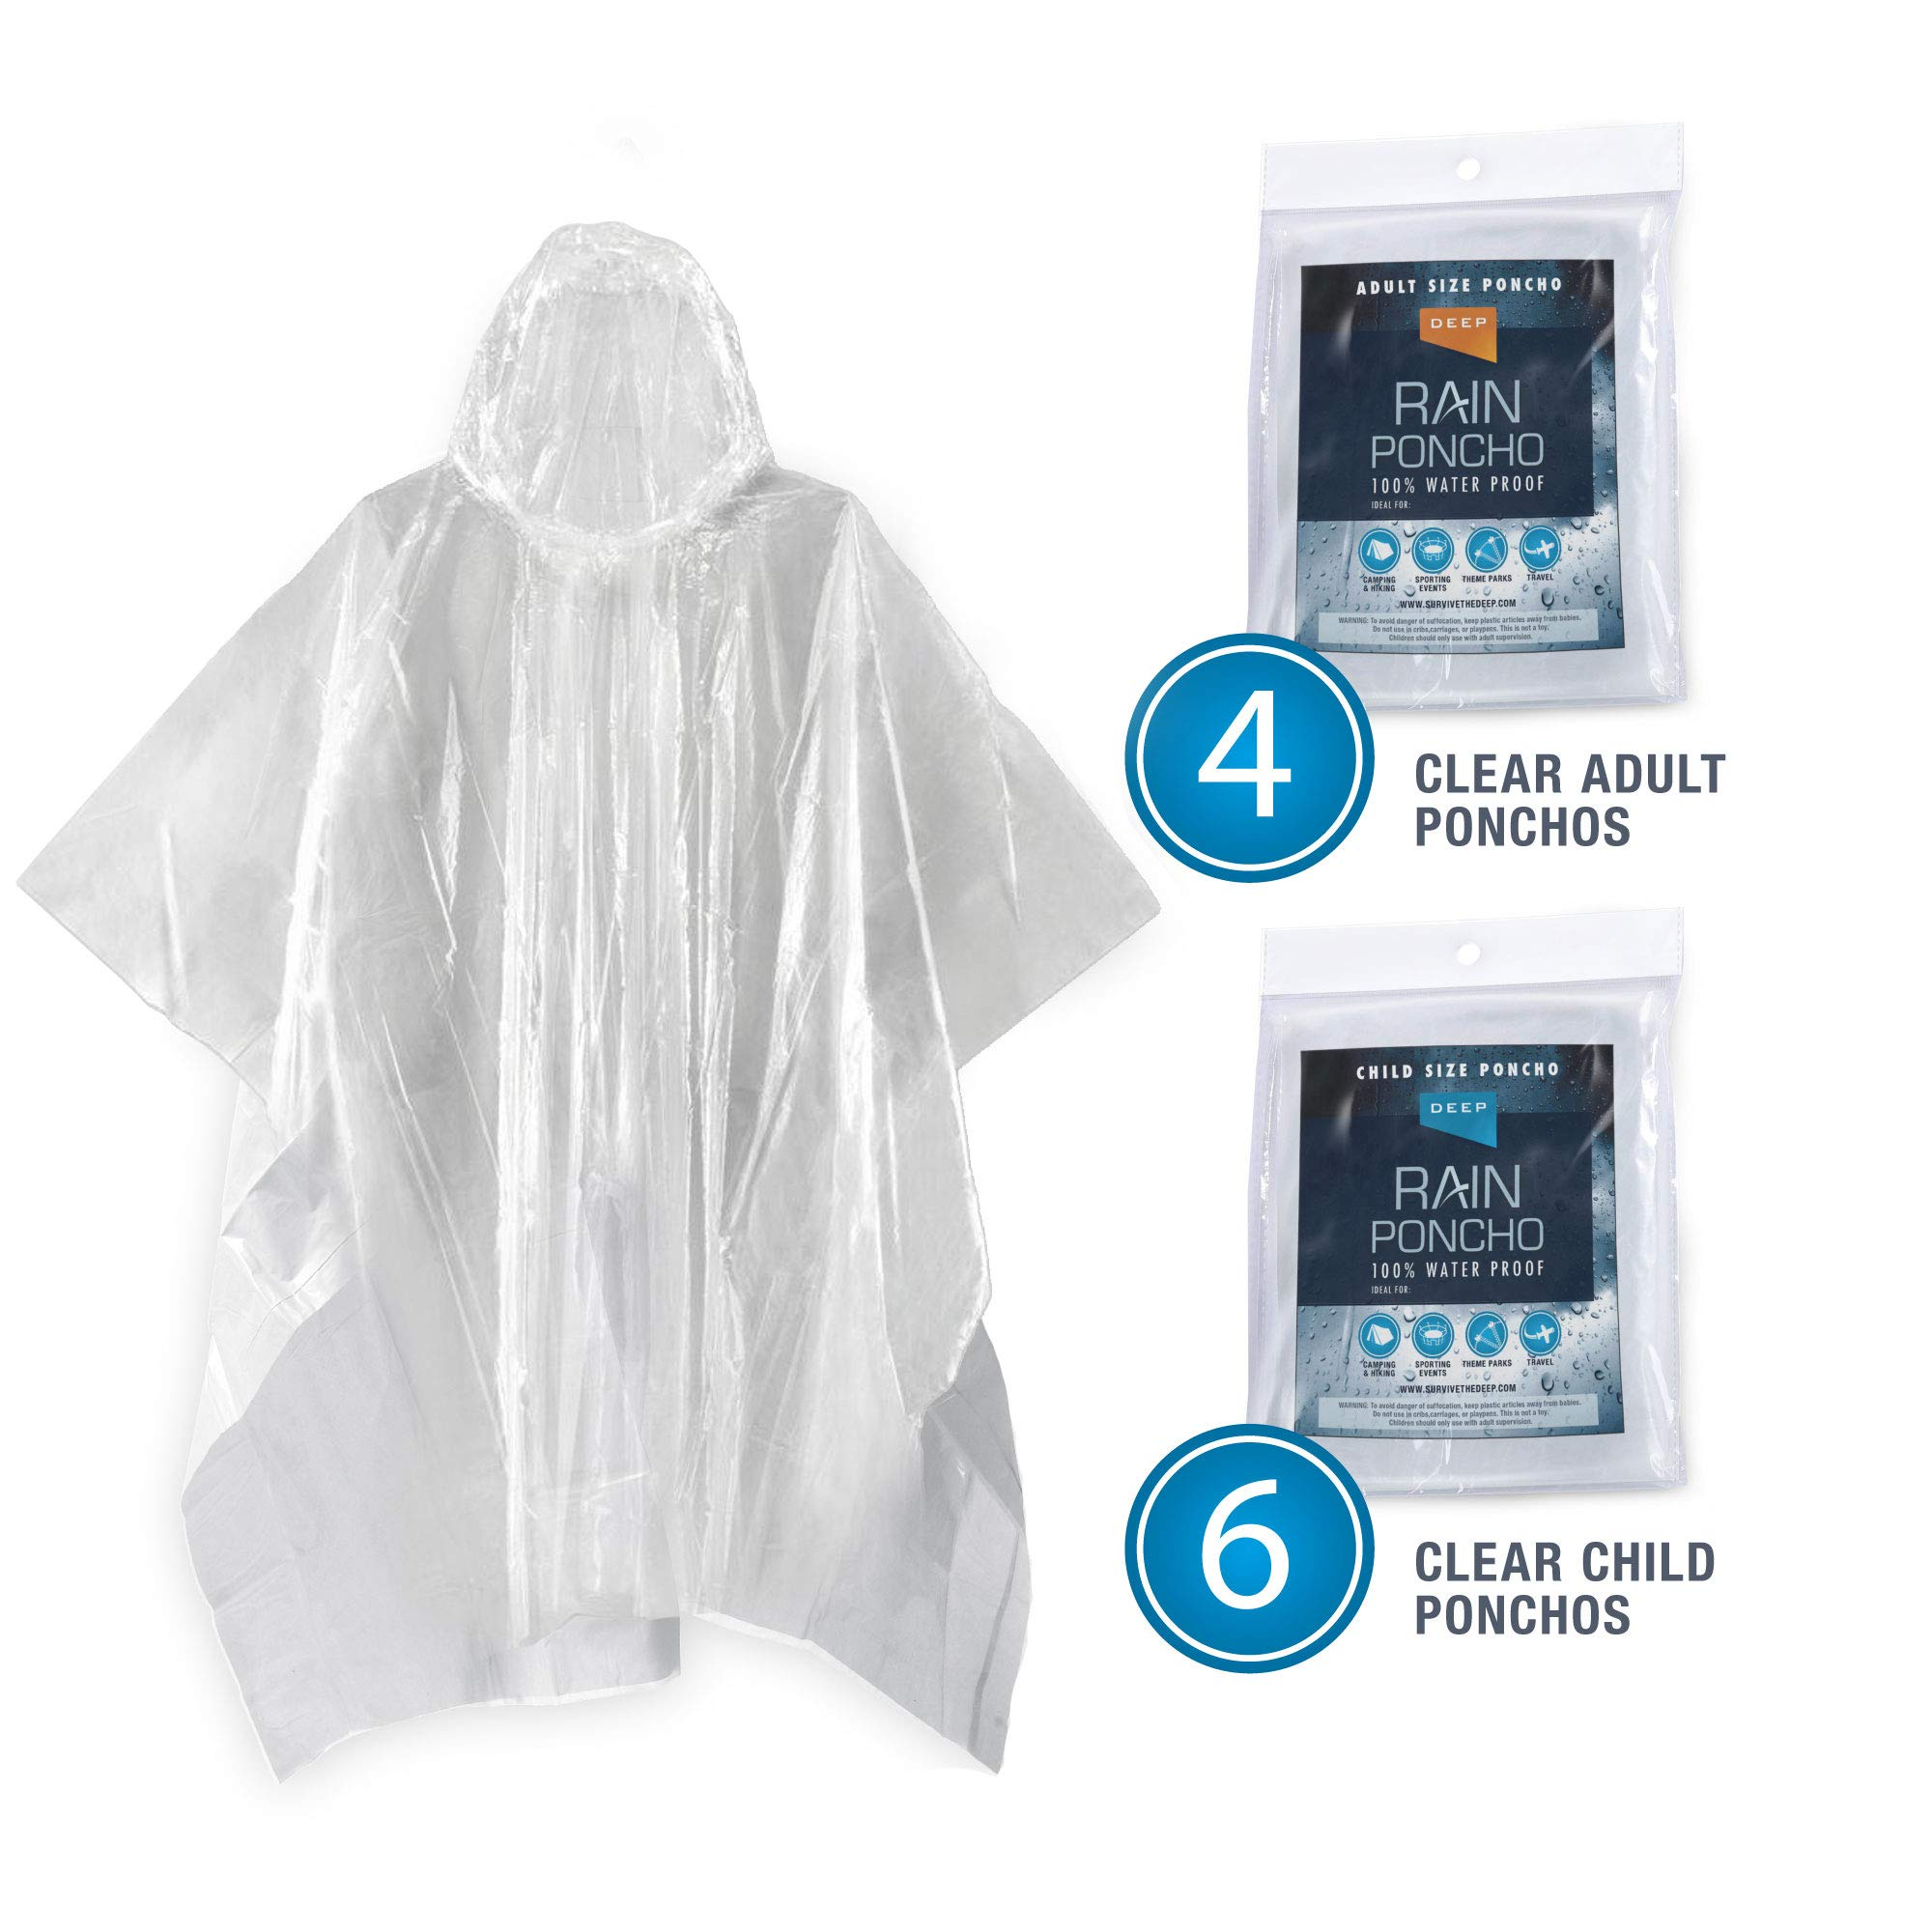 Deep Disposable Rain Poncho Family 10 Pack (Adults/Kids) | Waterproof Lightweight Portable Ponchos with Hood | Thick Plastic (2X Stronger Than Normal) Makes Them Reusable | Clear Color